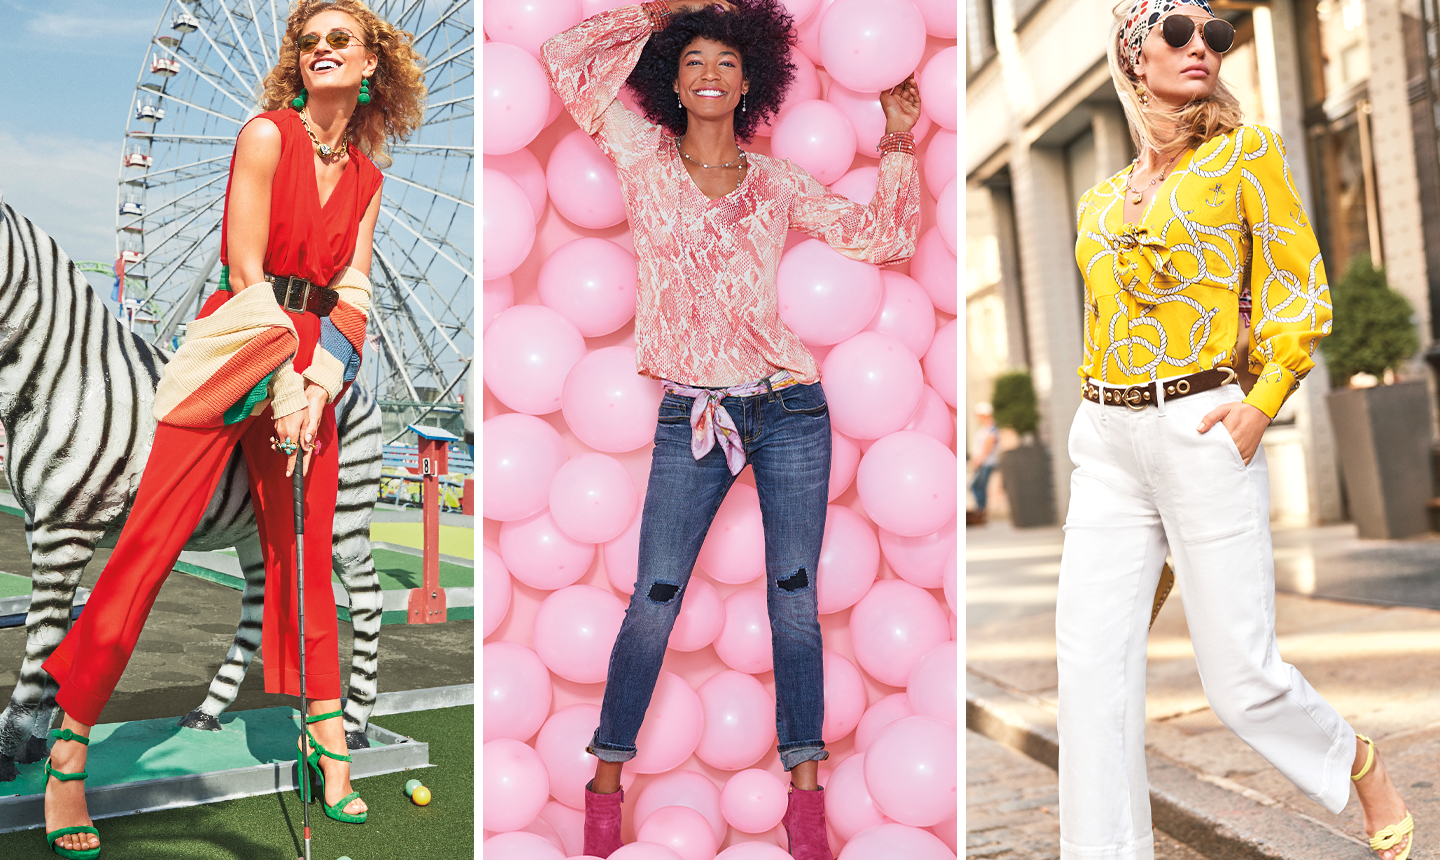 spring 2020 trend report: a bright, colorful tomorrow